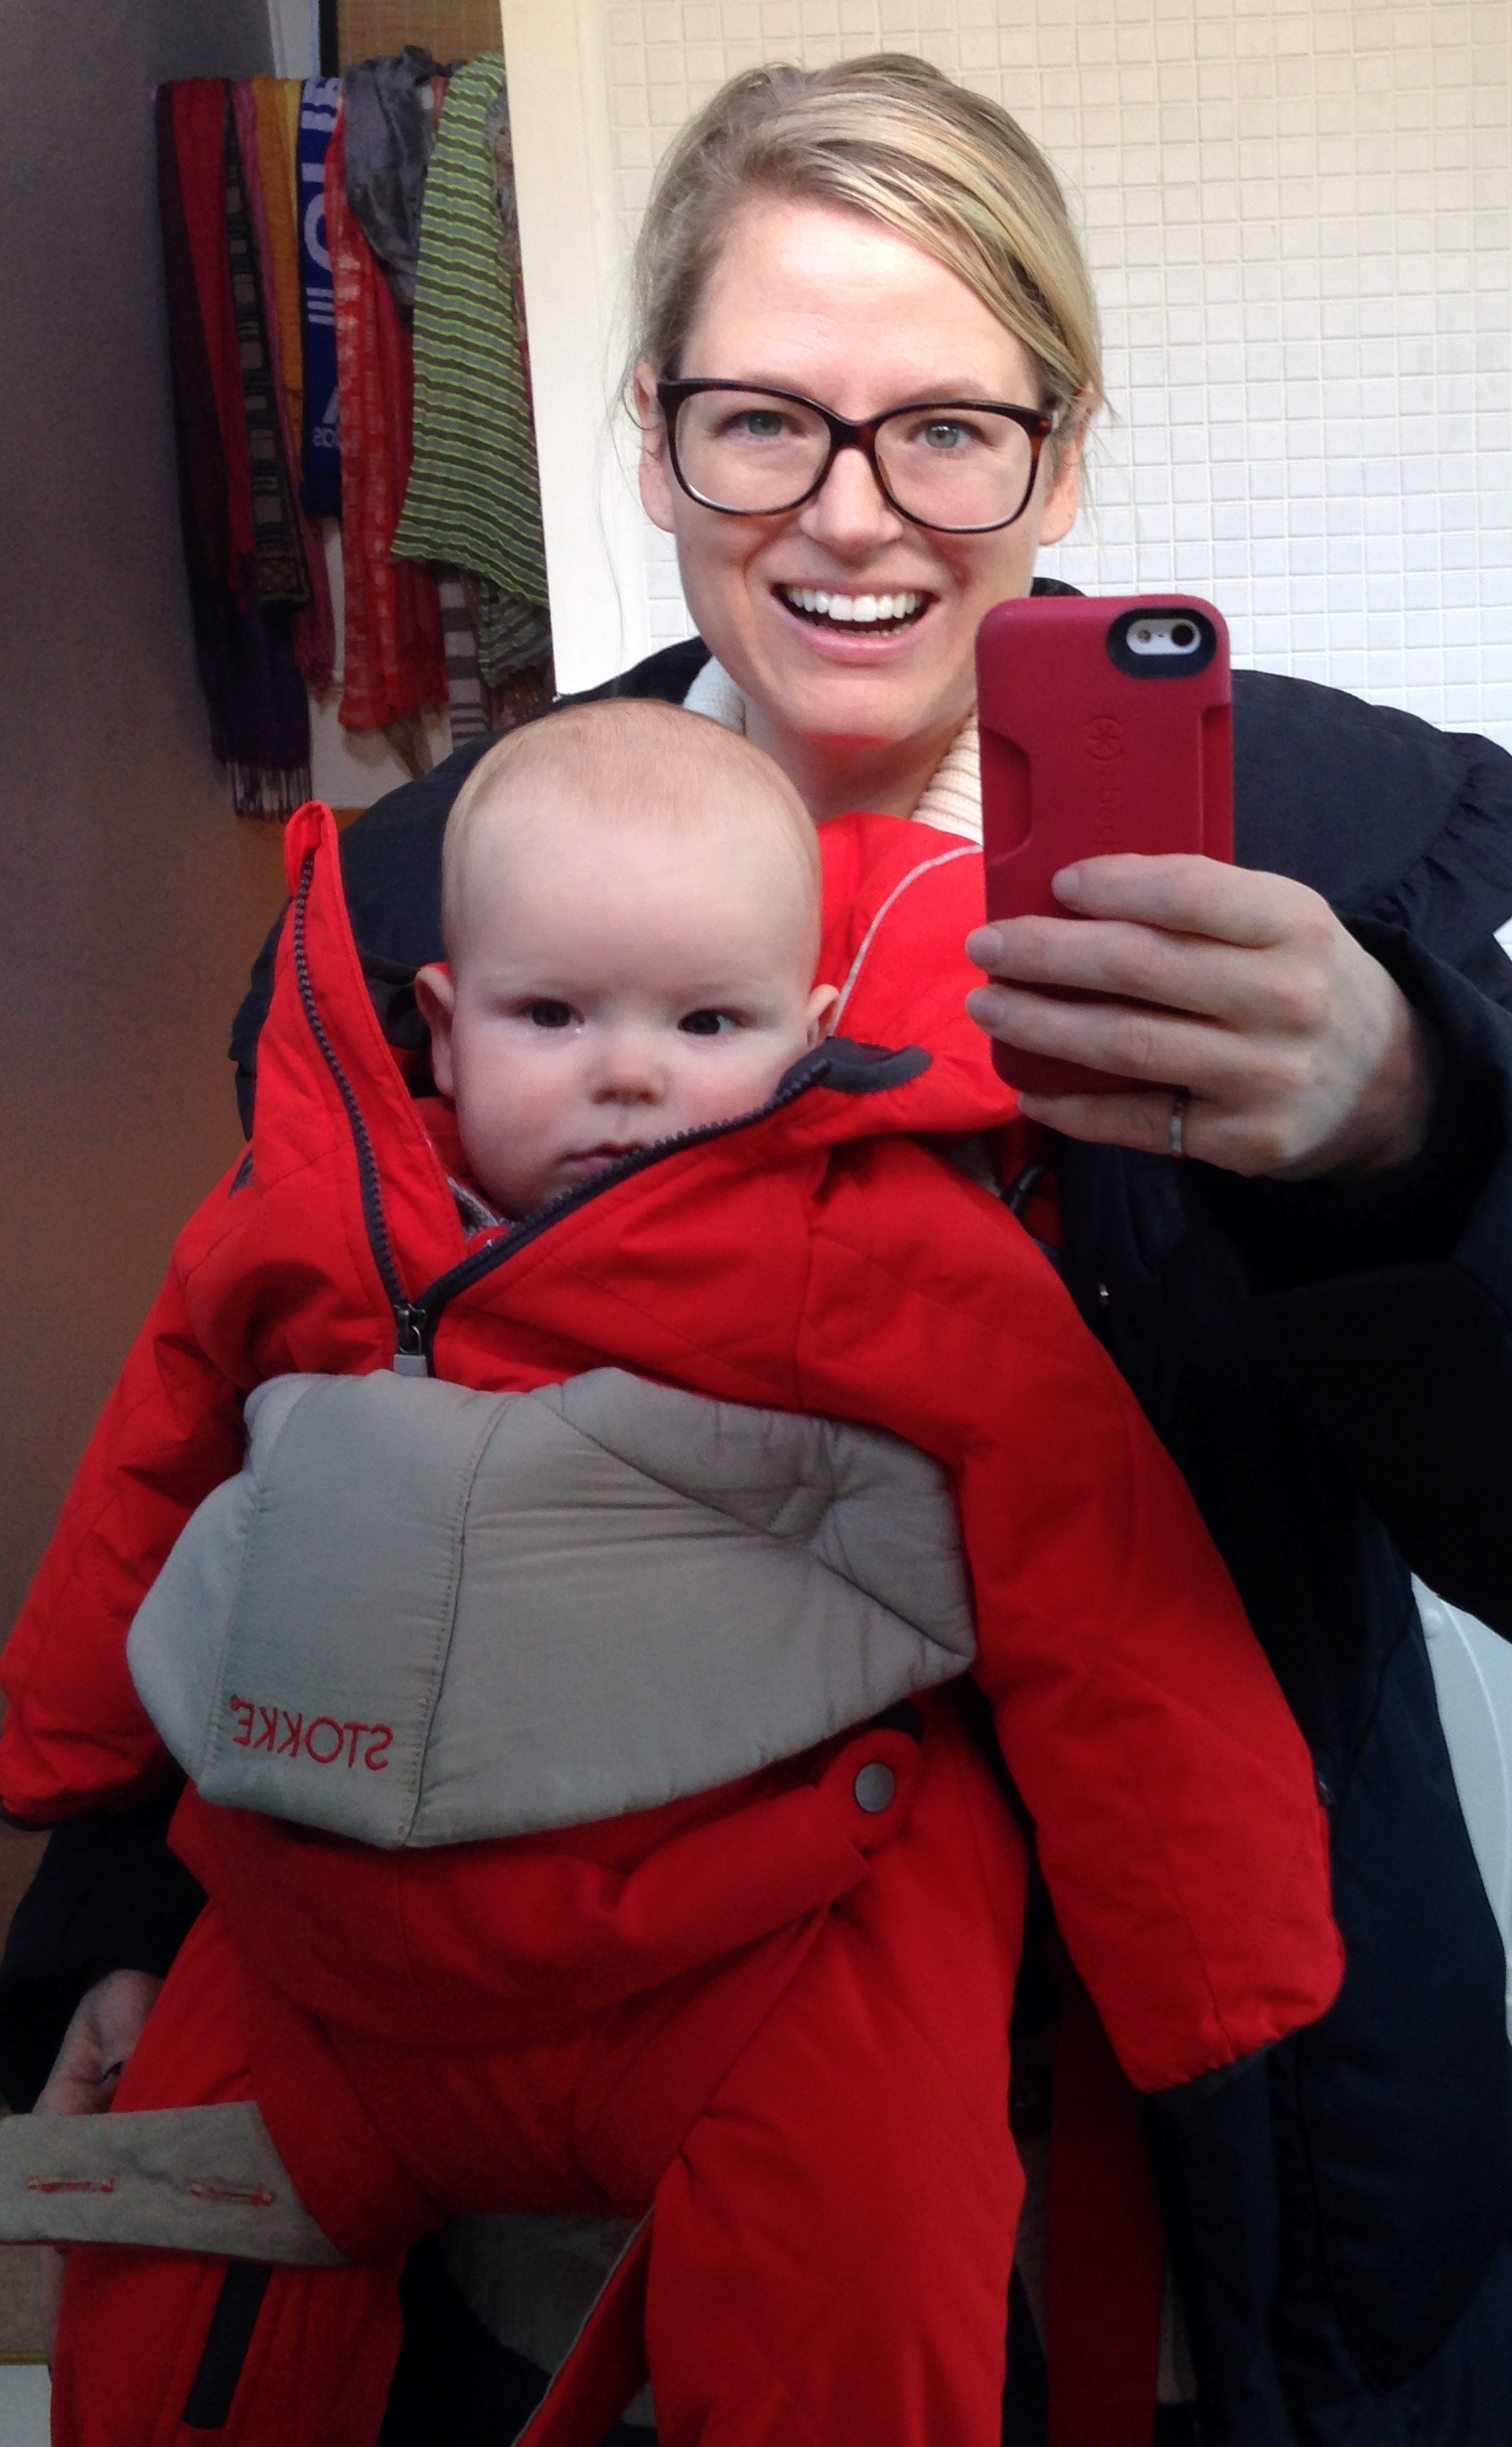 Just about ready to go out using Stokke's MyCarrier